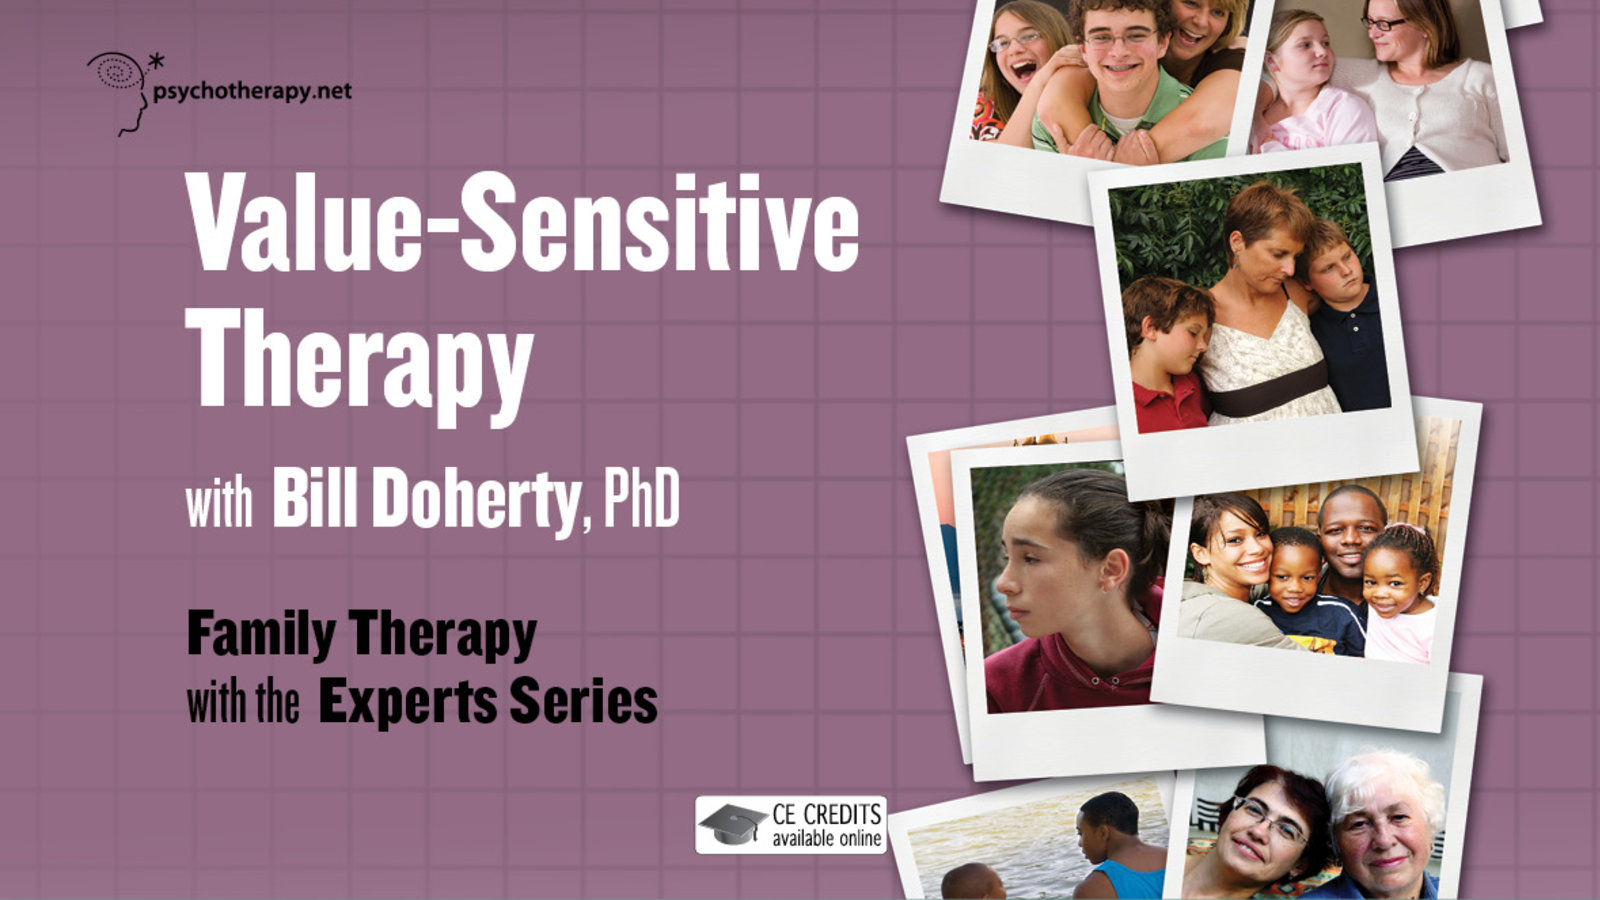 Value-Sensitive Therapy - With William Doherty